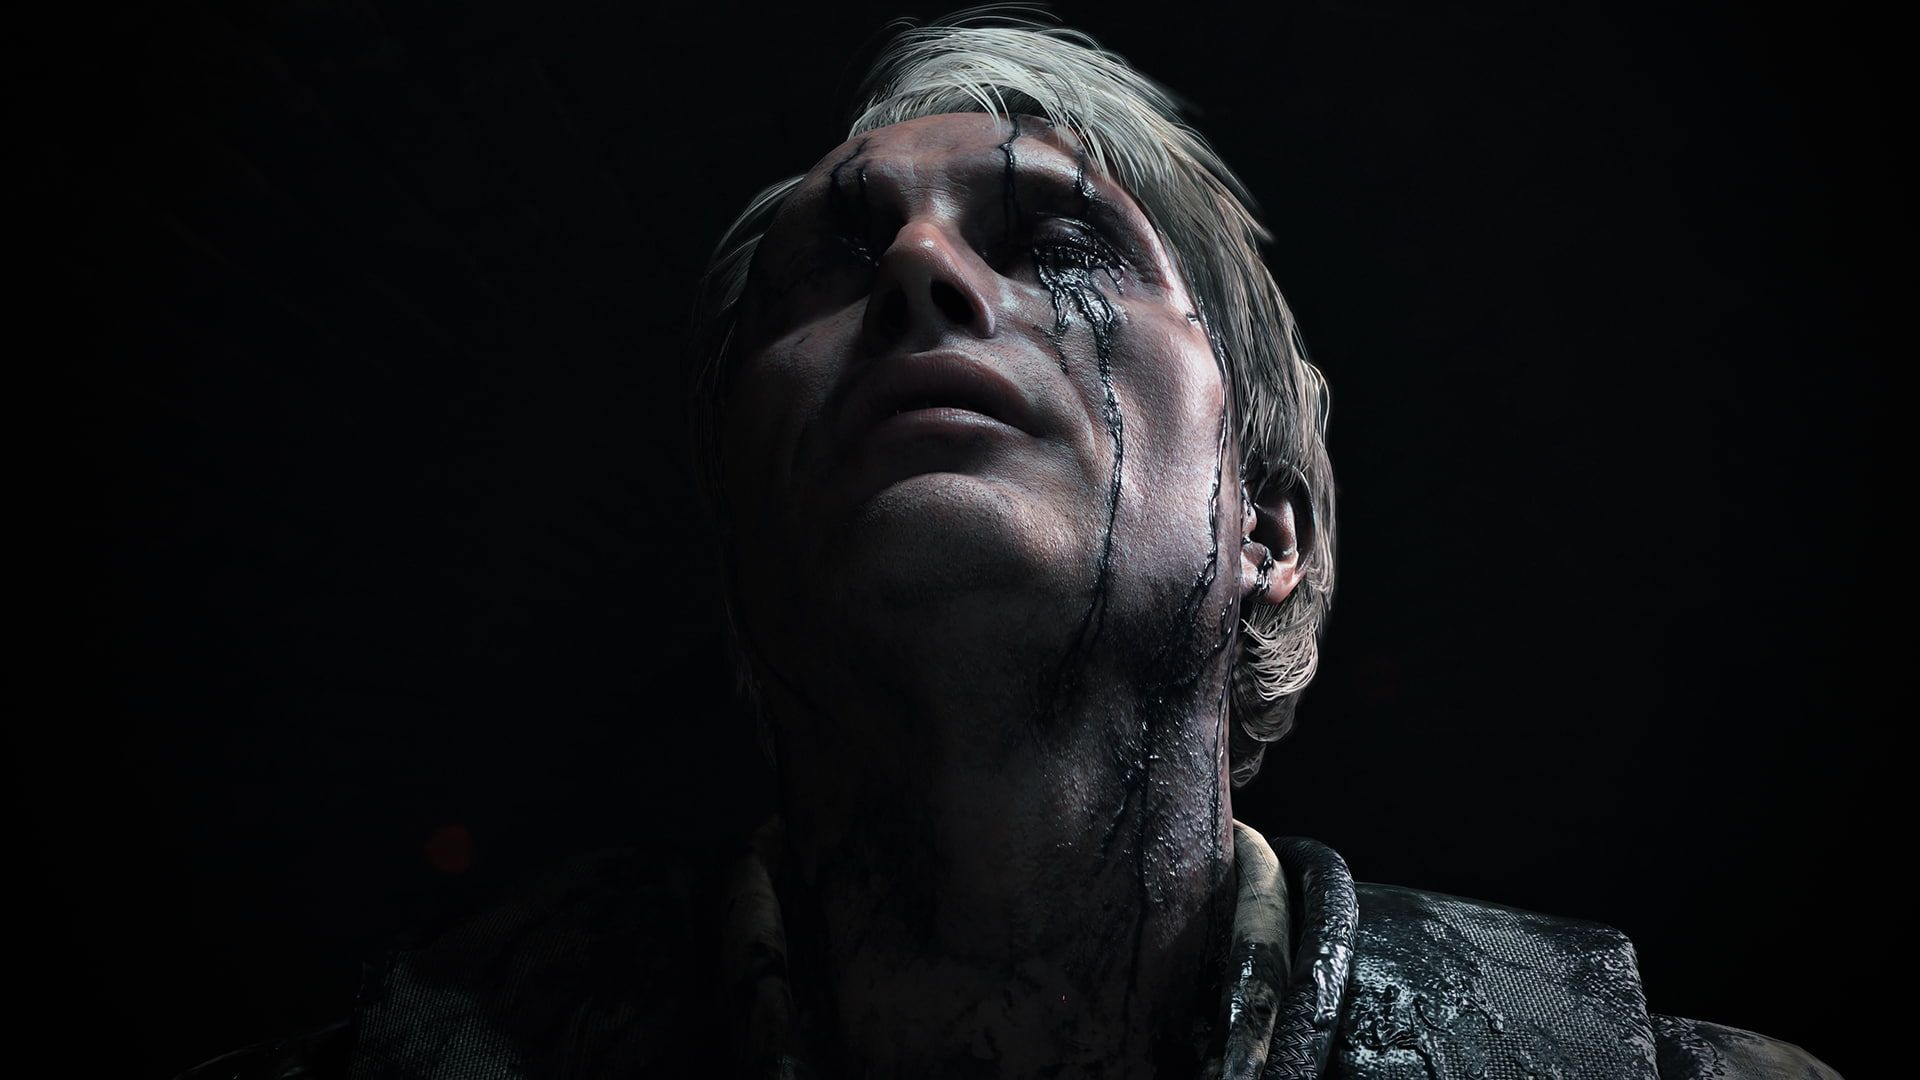 Pin By Walaa Awad On Famous People Mads Mikkelsen Kojima Productions Hideo